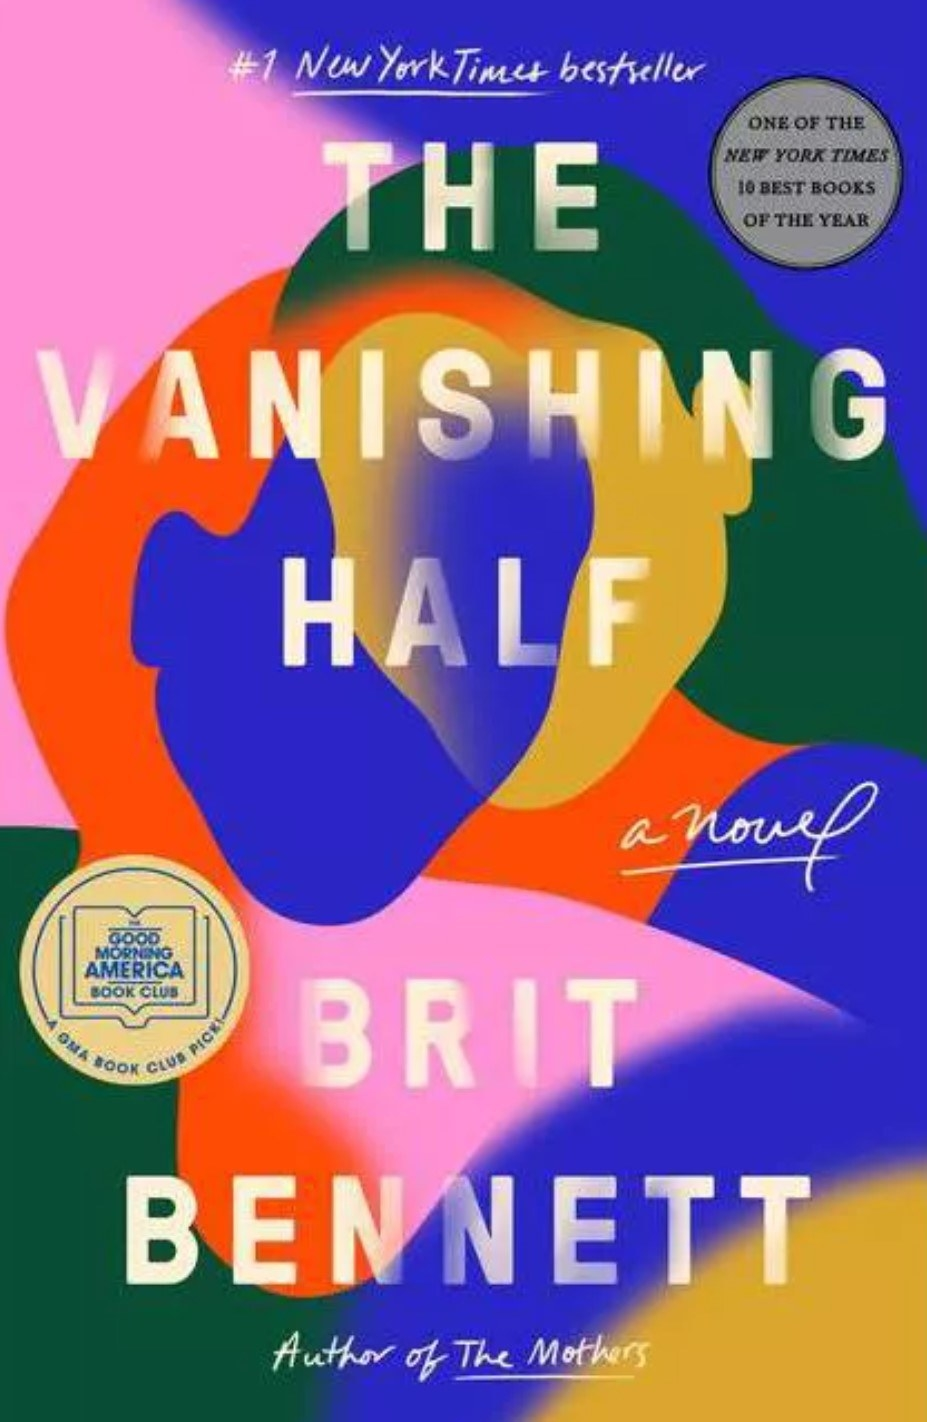 The cover of The Vanishing Half by Brit Bennett